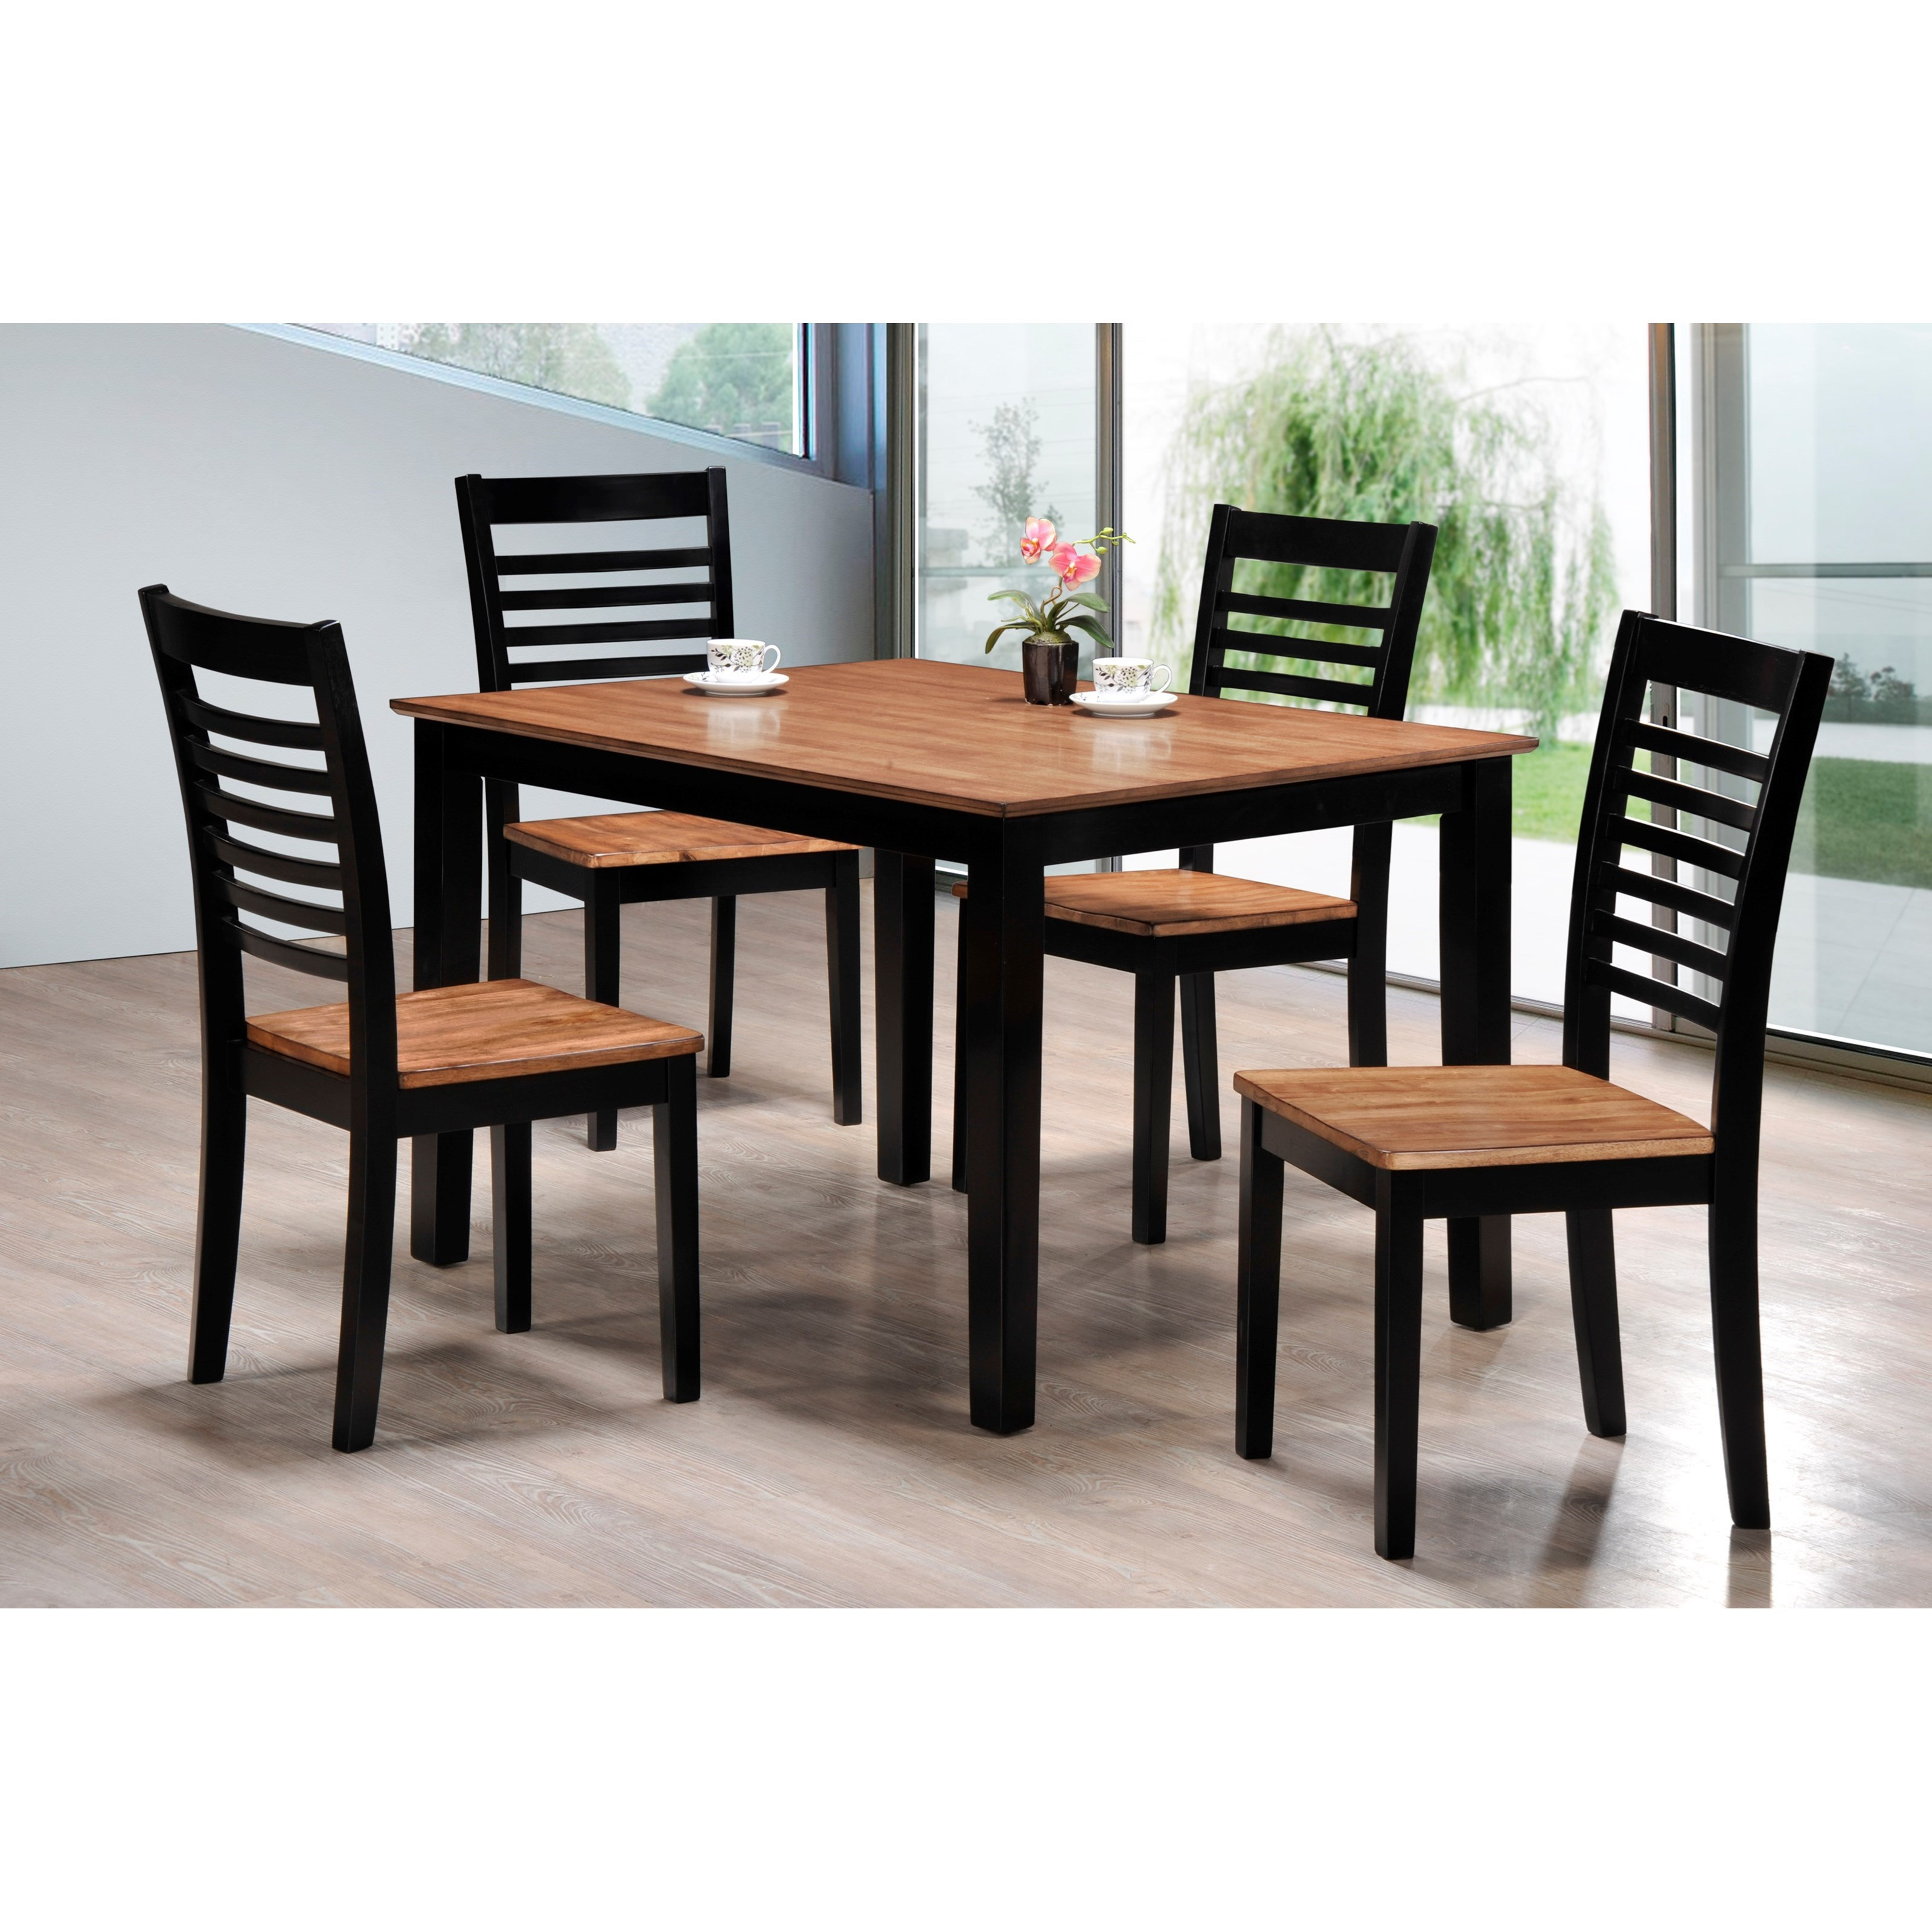 Simmons Upholstery Key West 5 Piece Table and Chair Set - Item Number: 5004-48